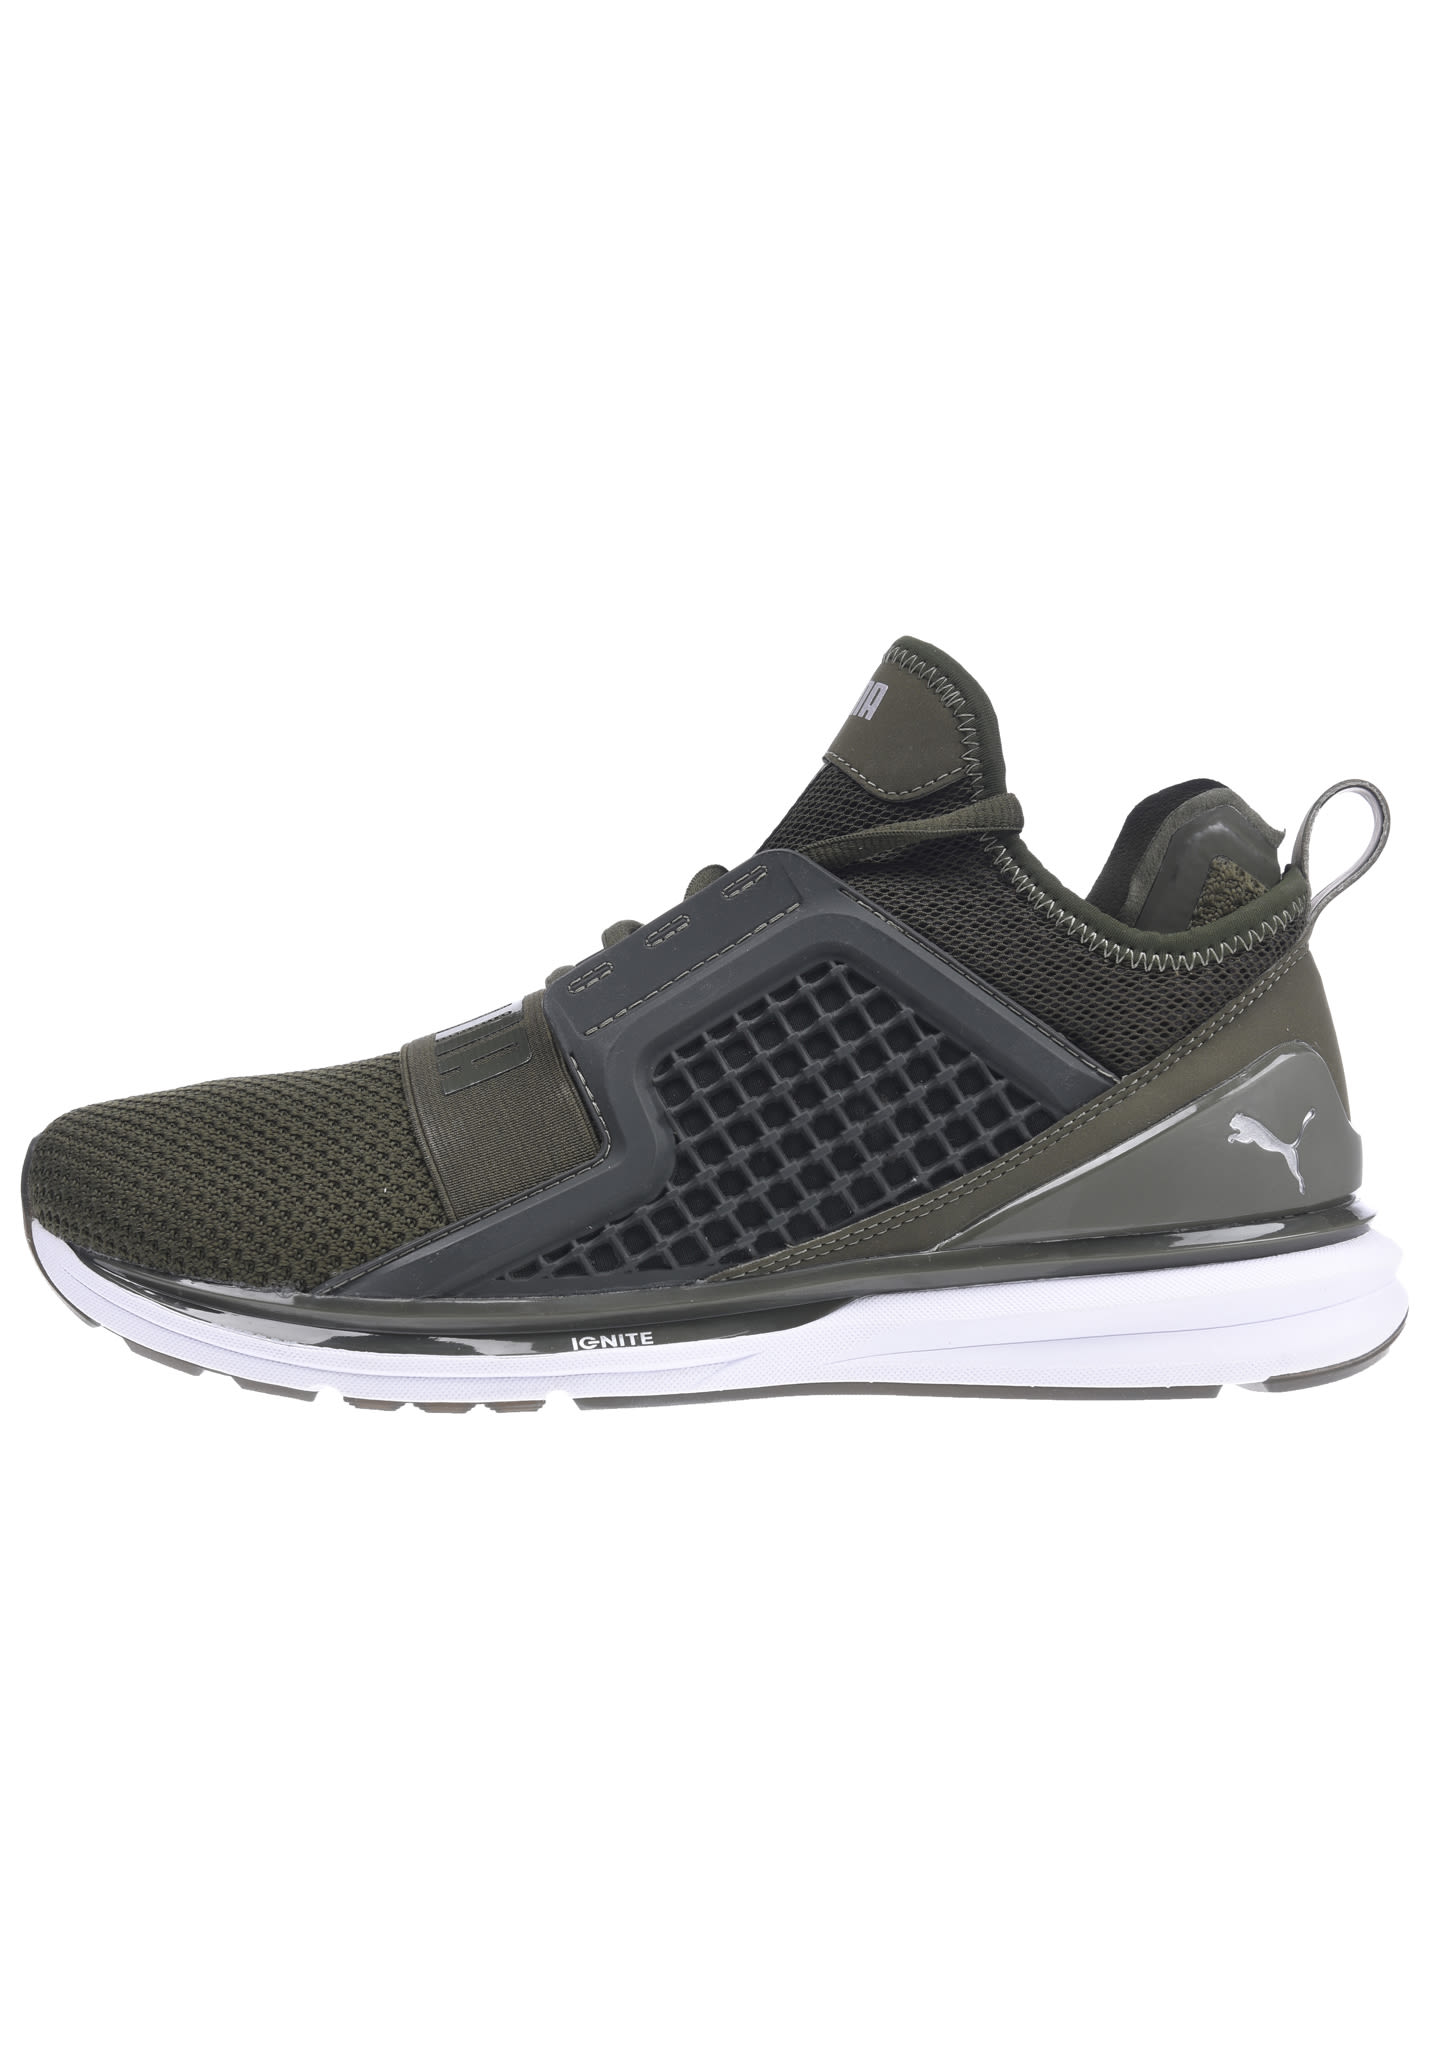 Puma Ignite Limitless Weave - Sneakers for Men - Green - Planet Sports b25e3940a